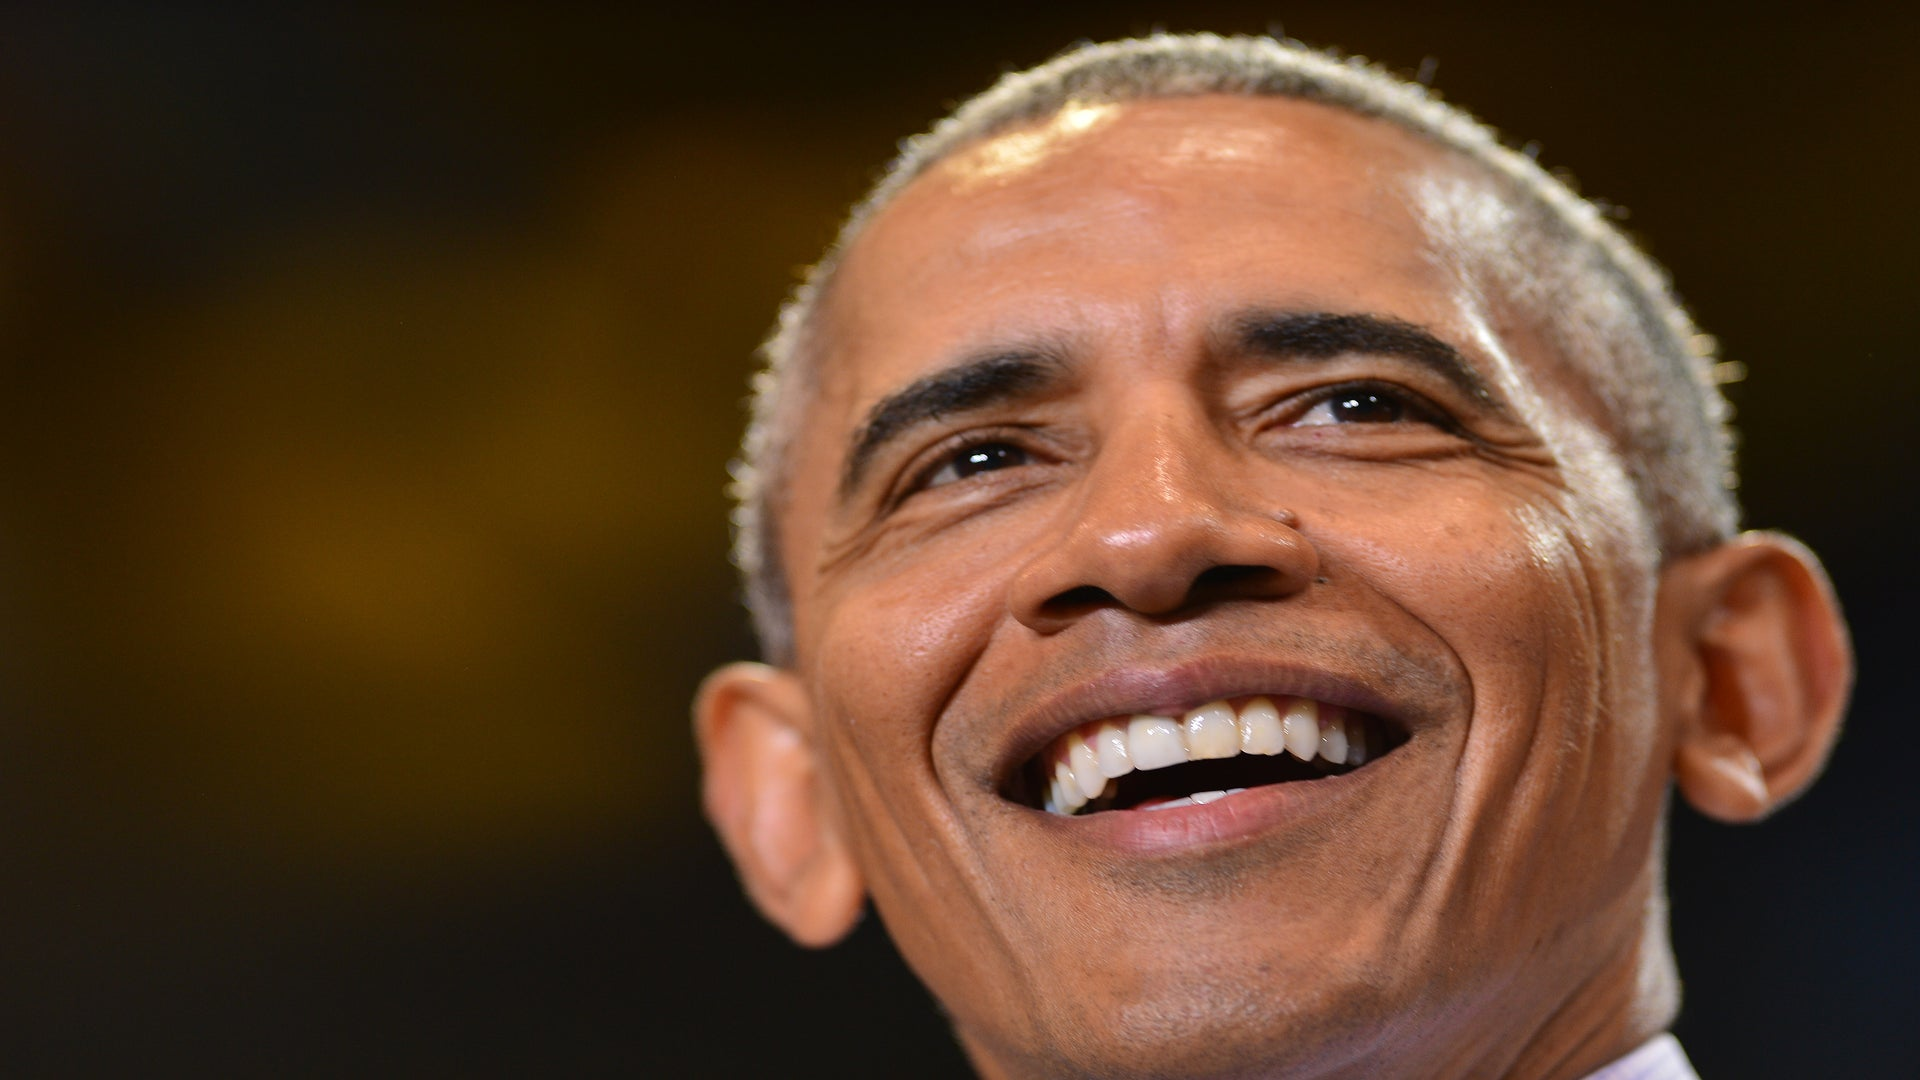 """President Obama: """"If I Watched Fox News, I probably wouldn't vote for me either"""""""